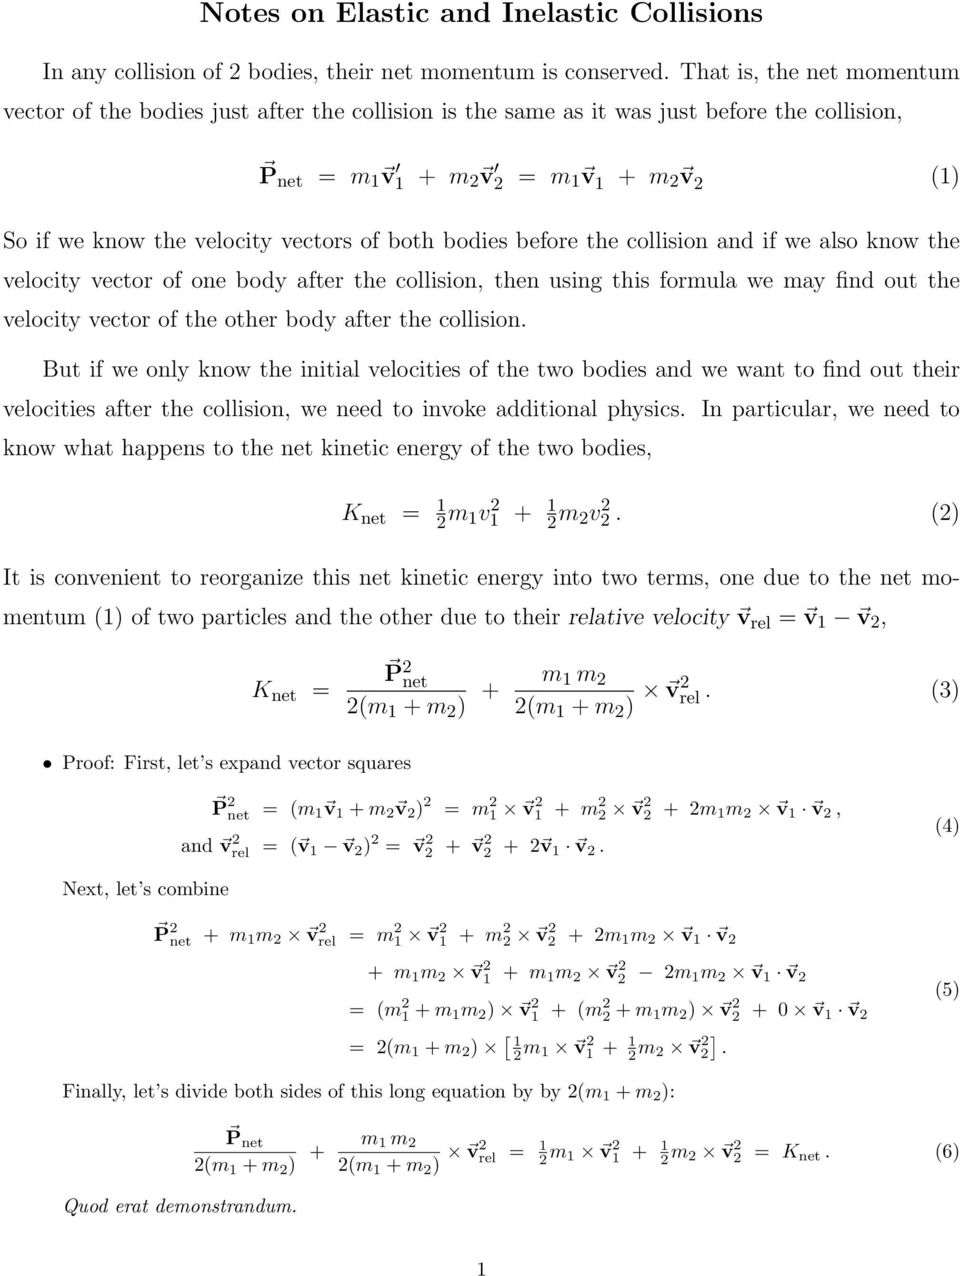 Notes On Elastic And Inelastic Collisions Pdf Free Download